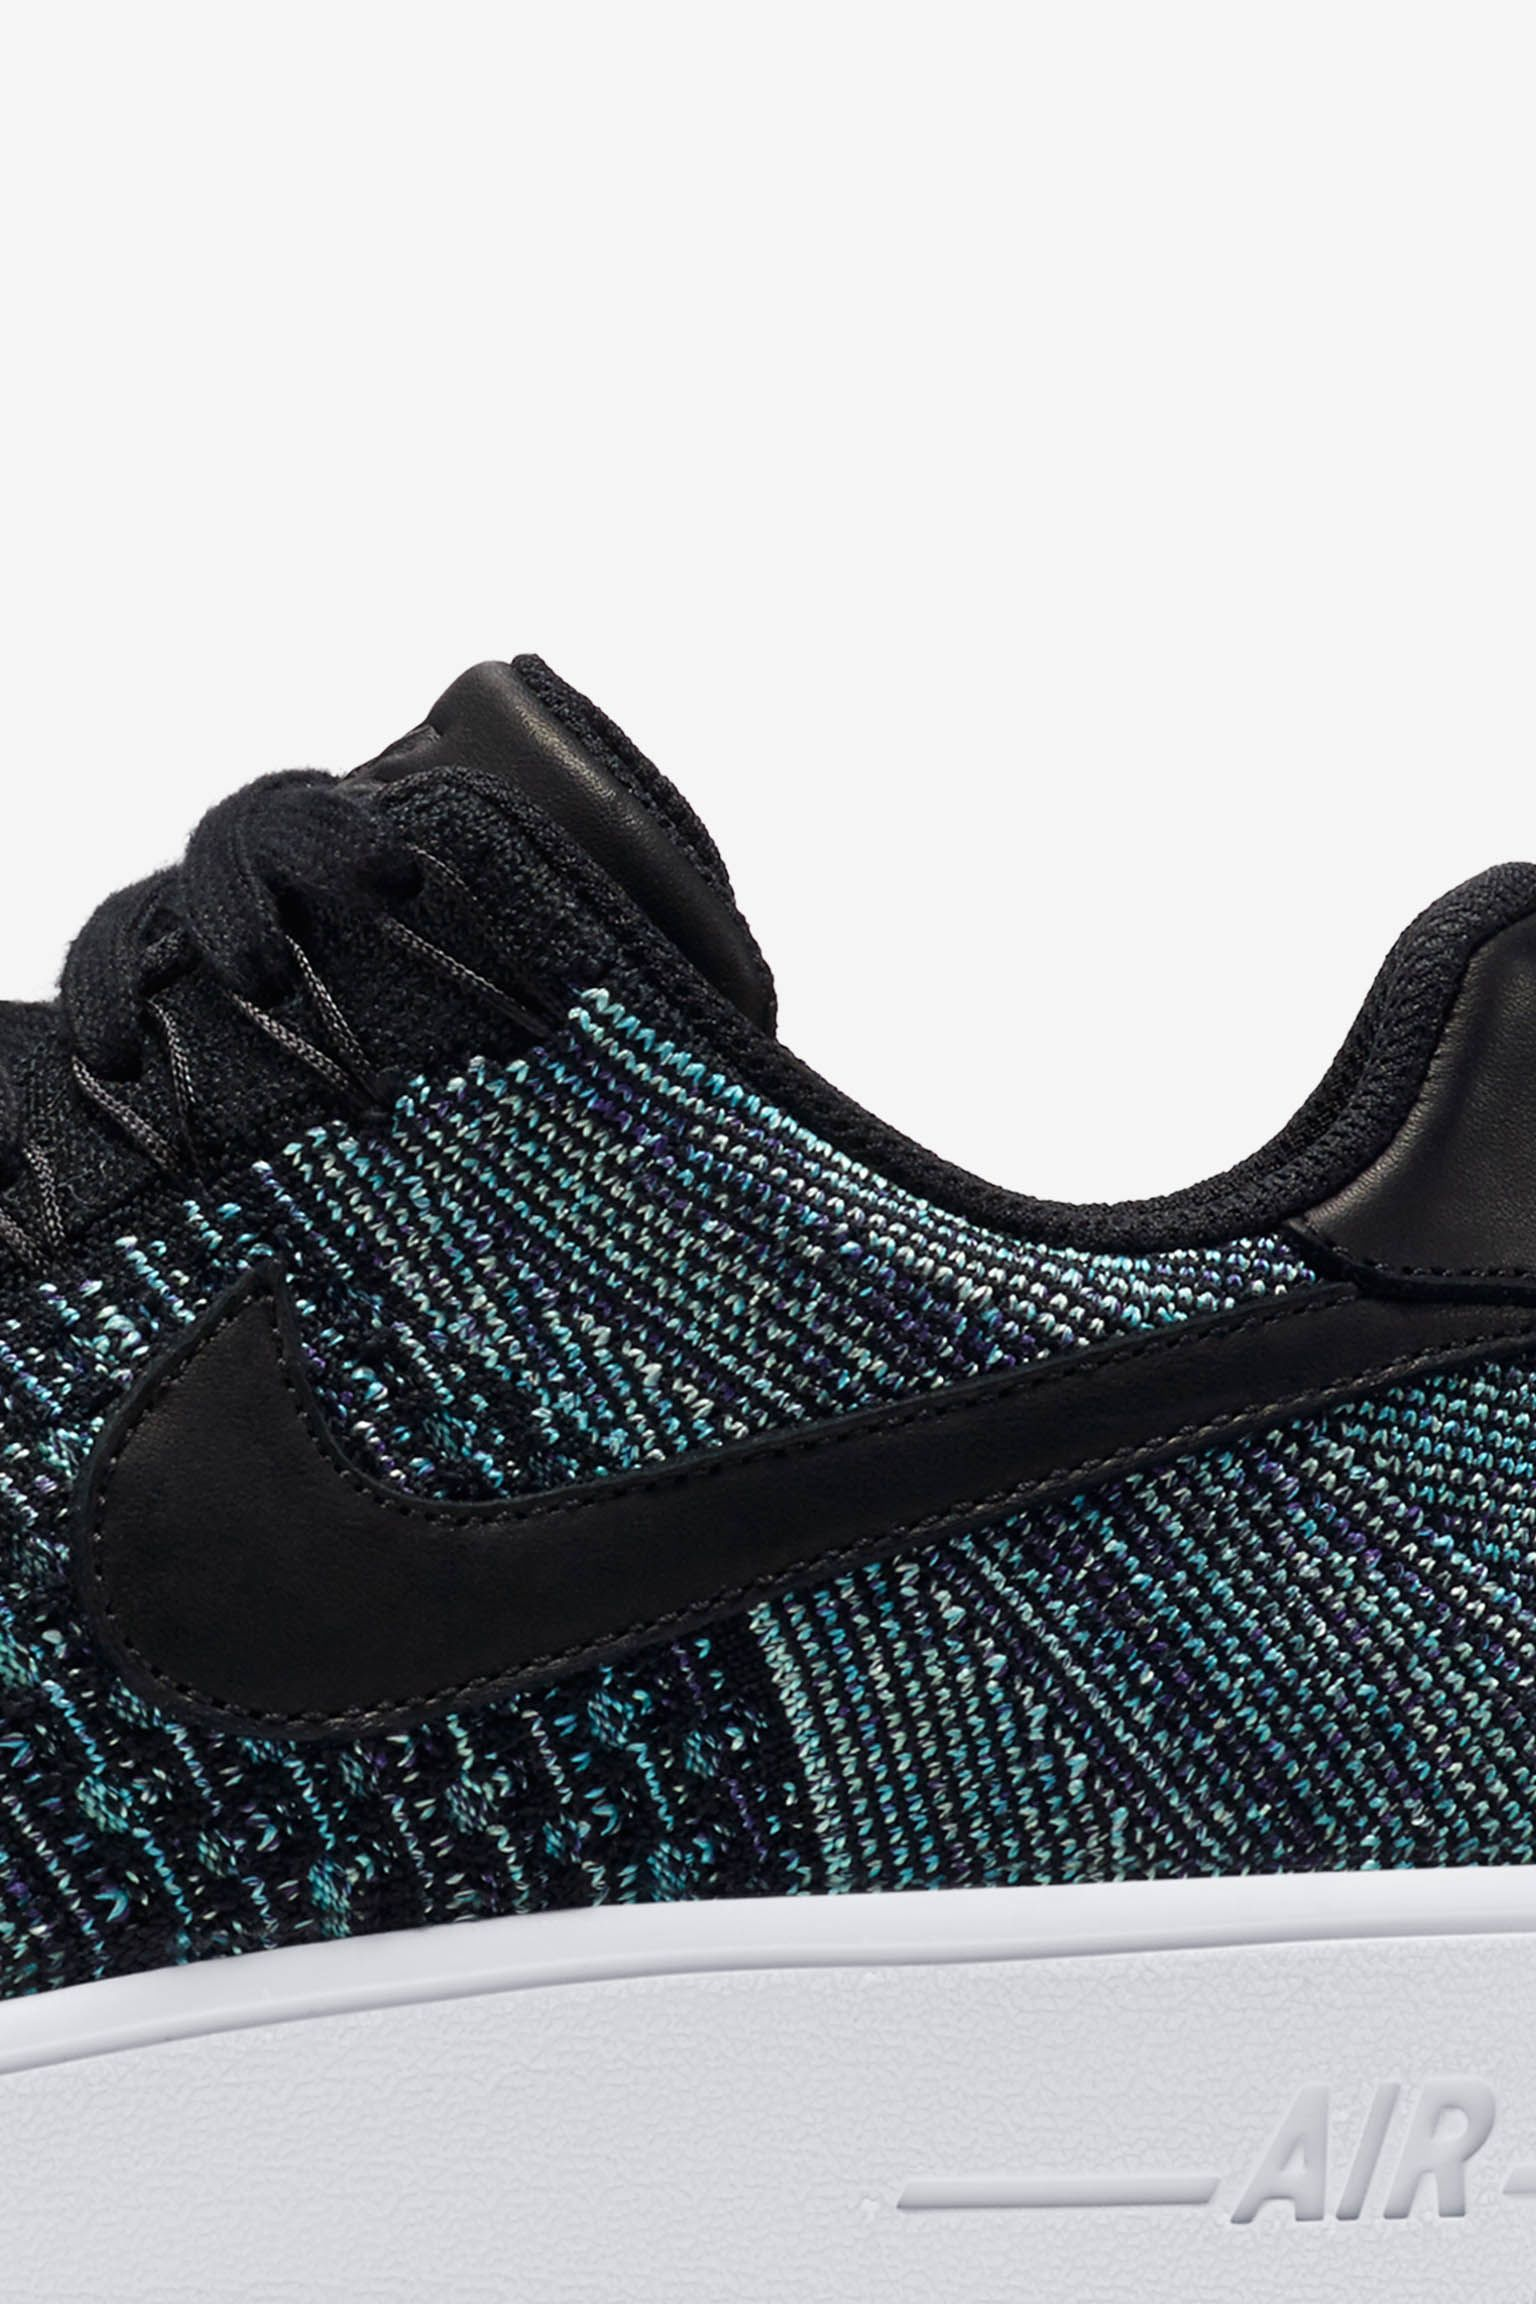 Nike Air Force 1 Low Flyknit « Vapor Green & Black »